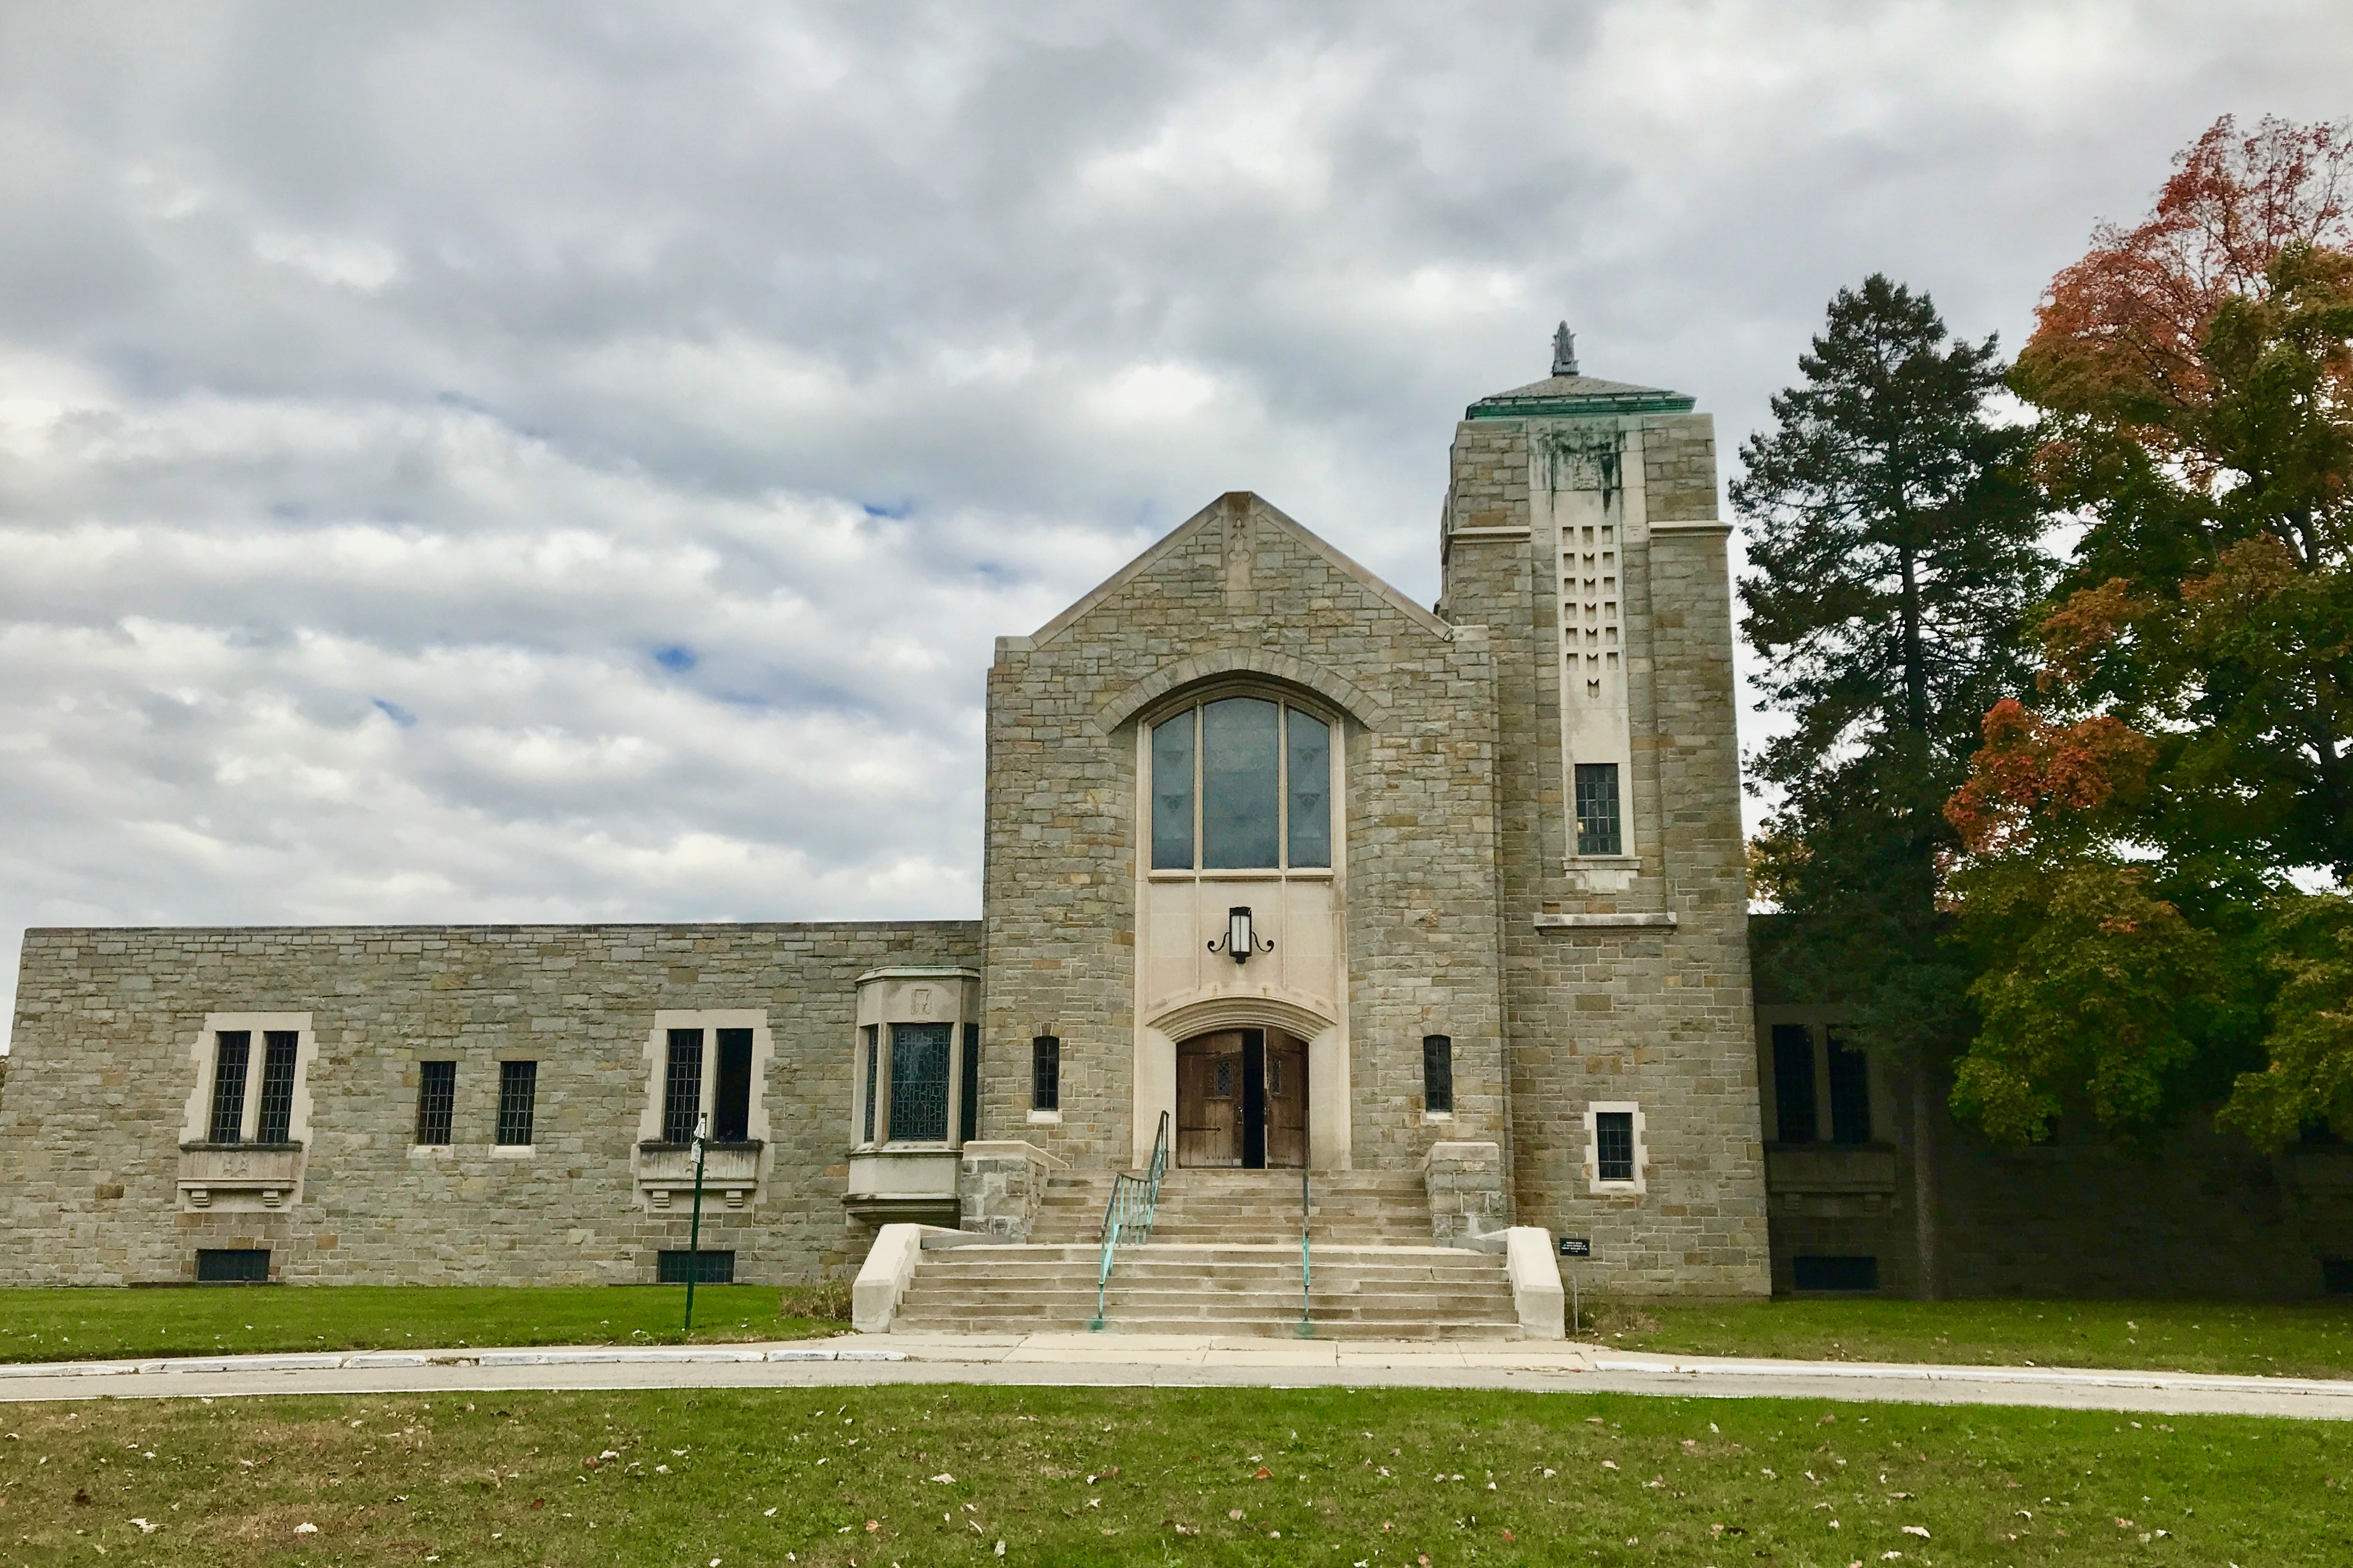 A stone, church-like building in front of a green lawn. There's a steeple to the right of the entrance.